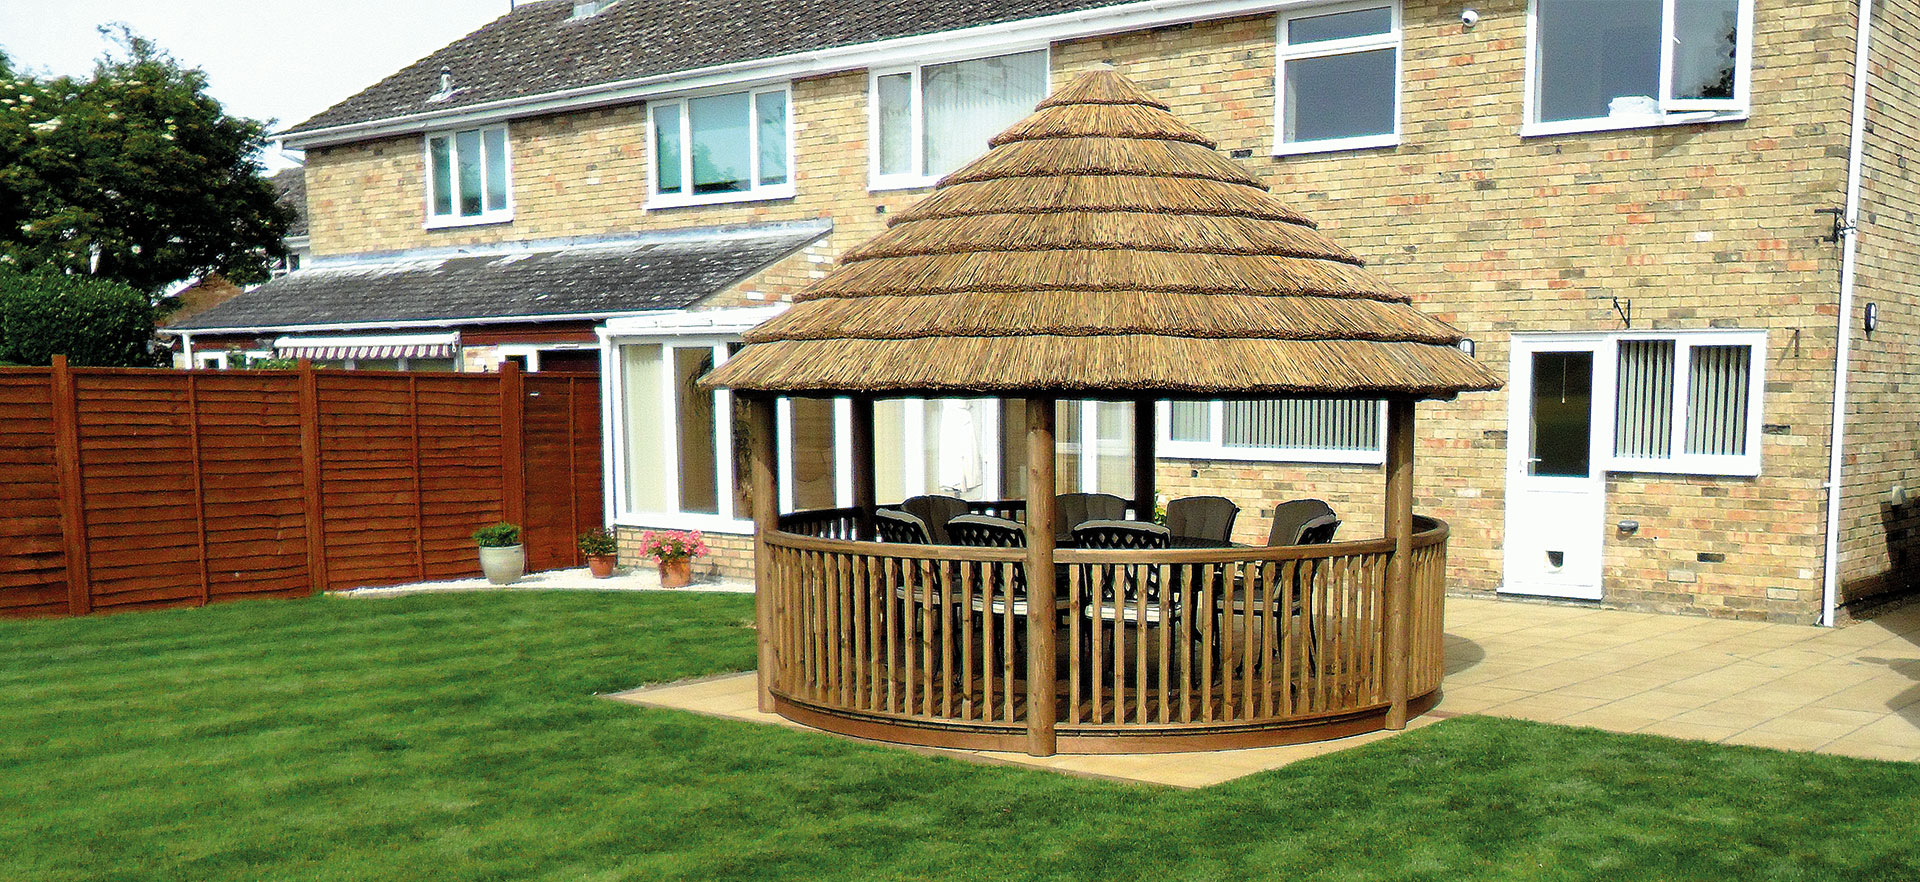 4 metre gazebo on garden patio of semi detached house